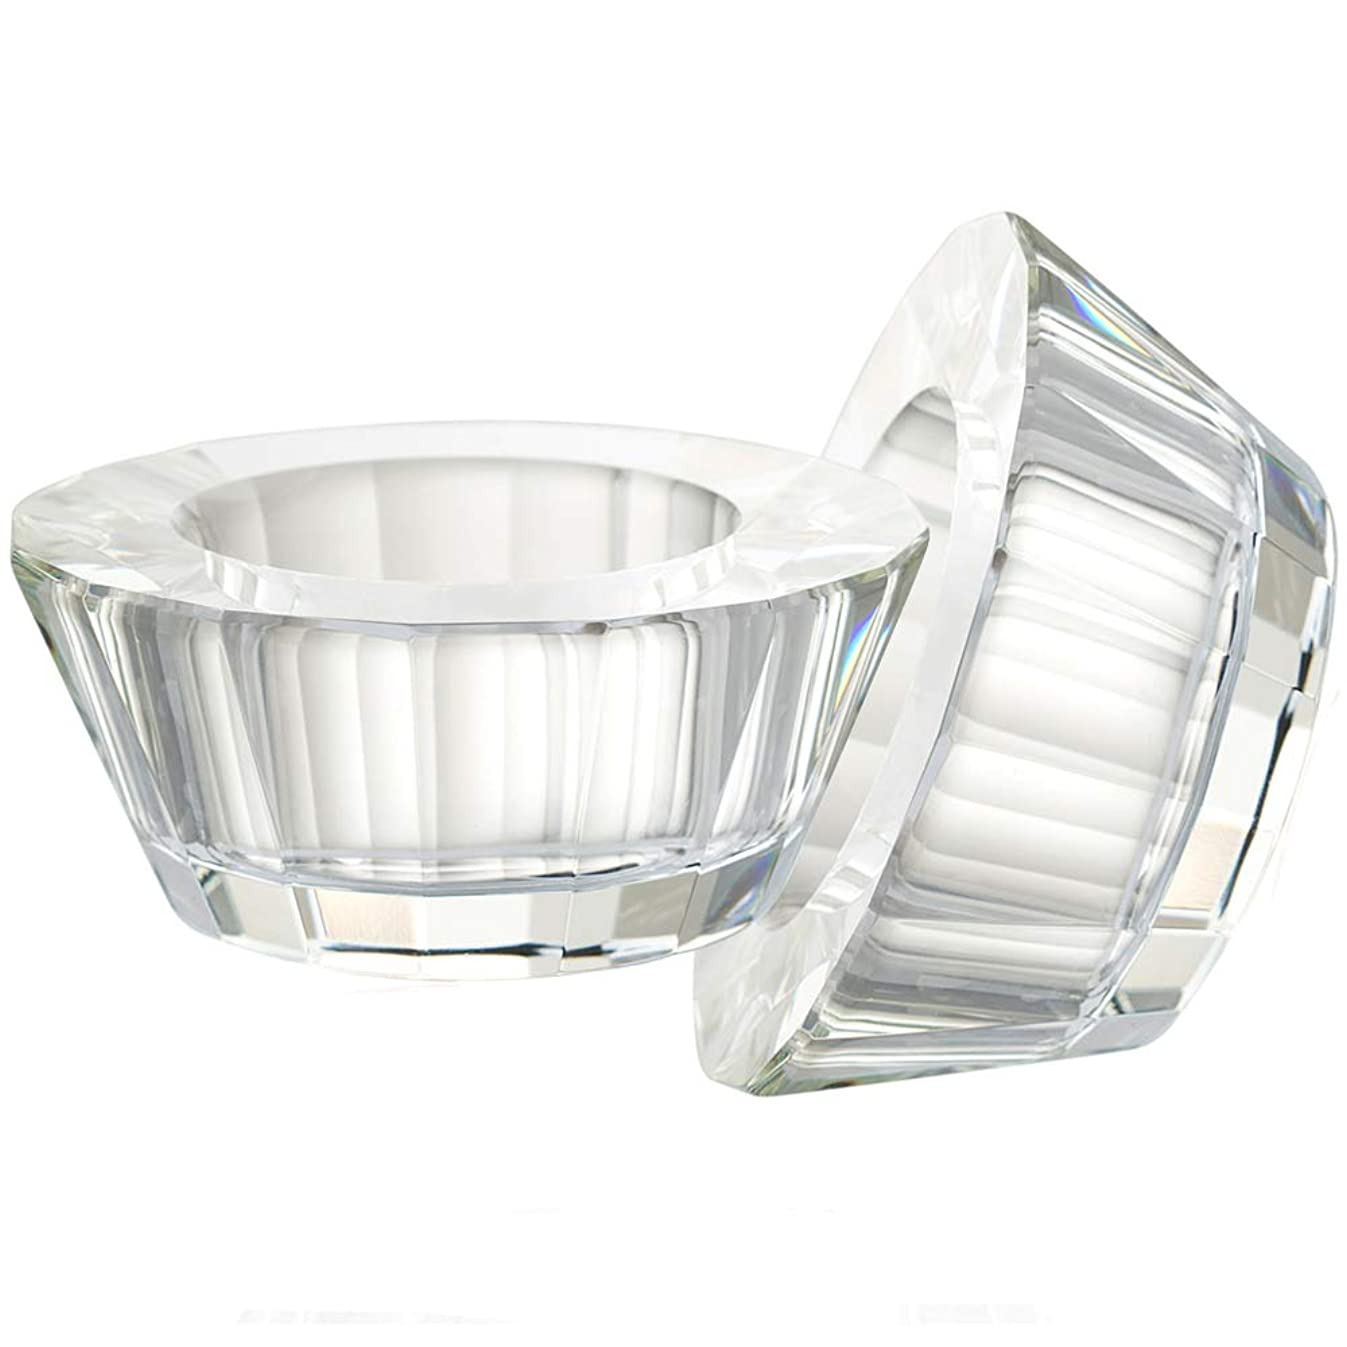 DONOUCLS Crystal Tealight Holder Candlestick Christmas Decorations for Home Party Dinner Hand-Cut 2.6'' X 1.2'' Clear